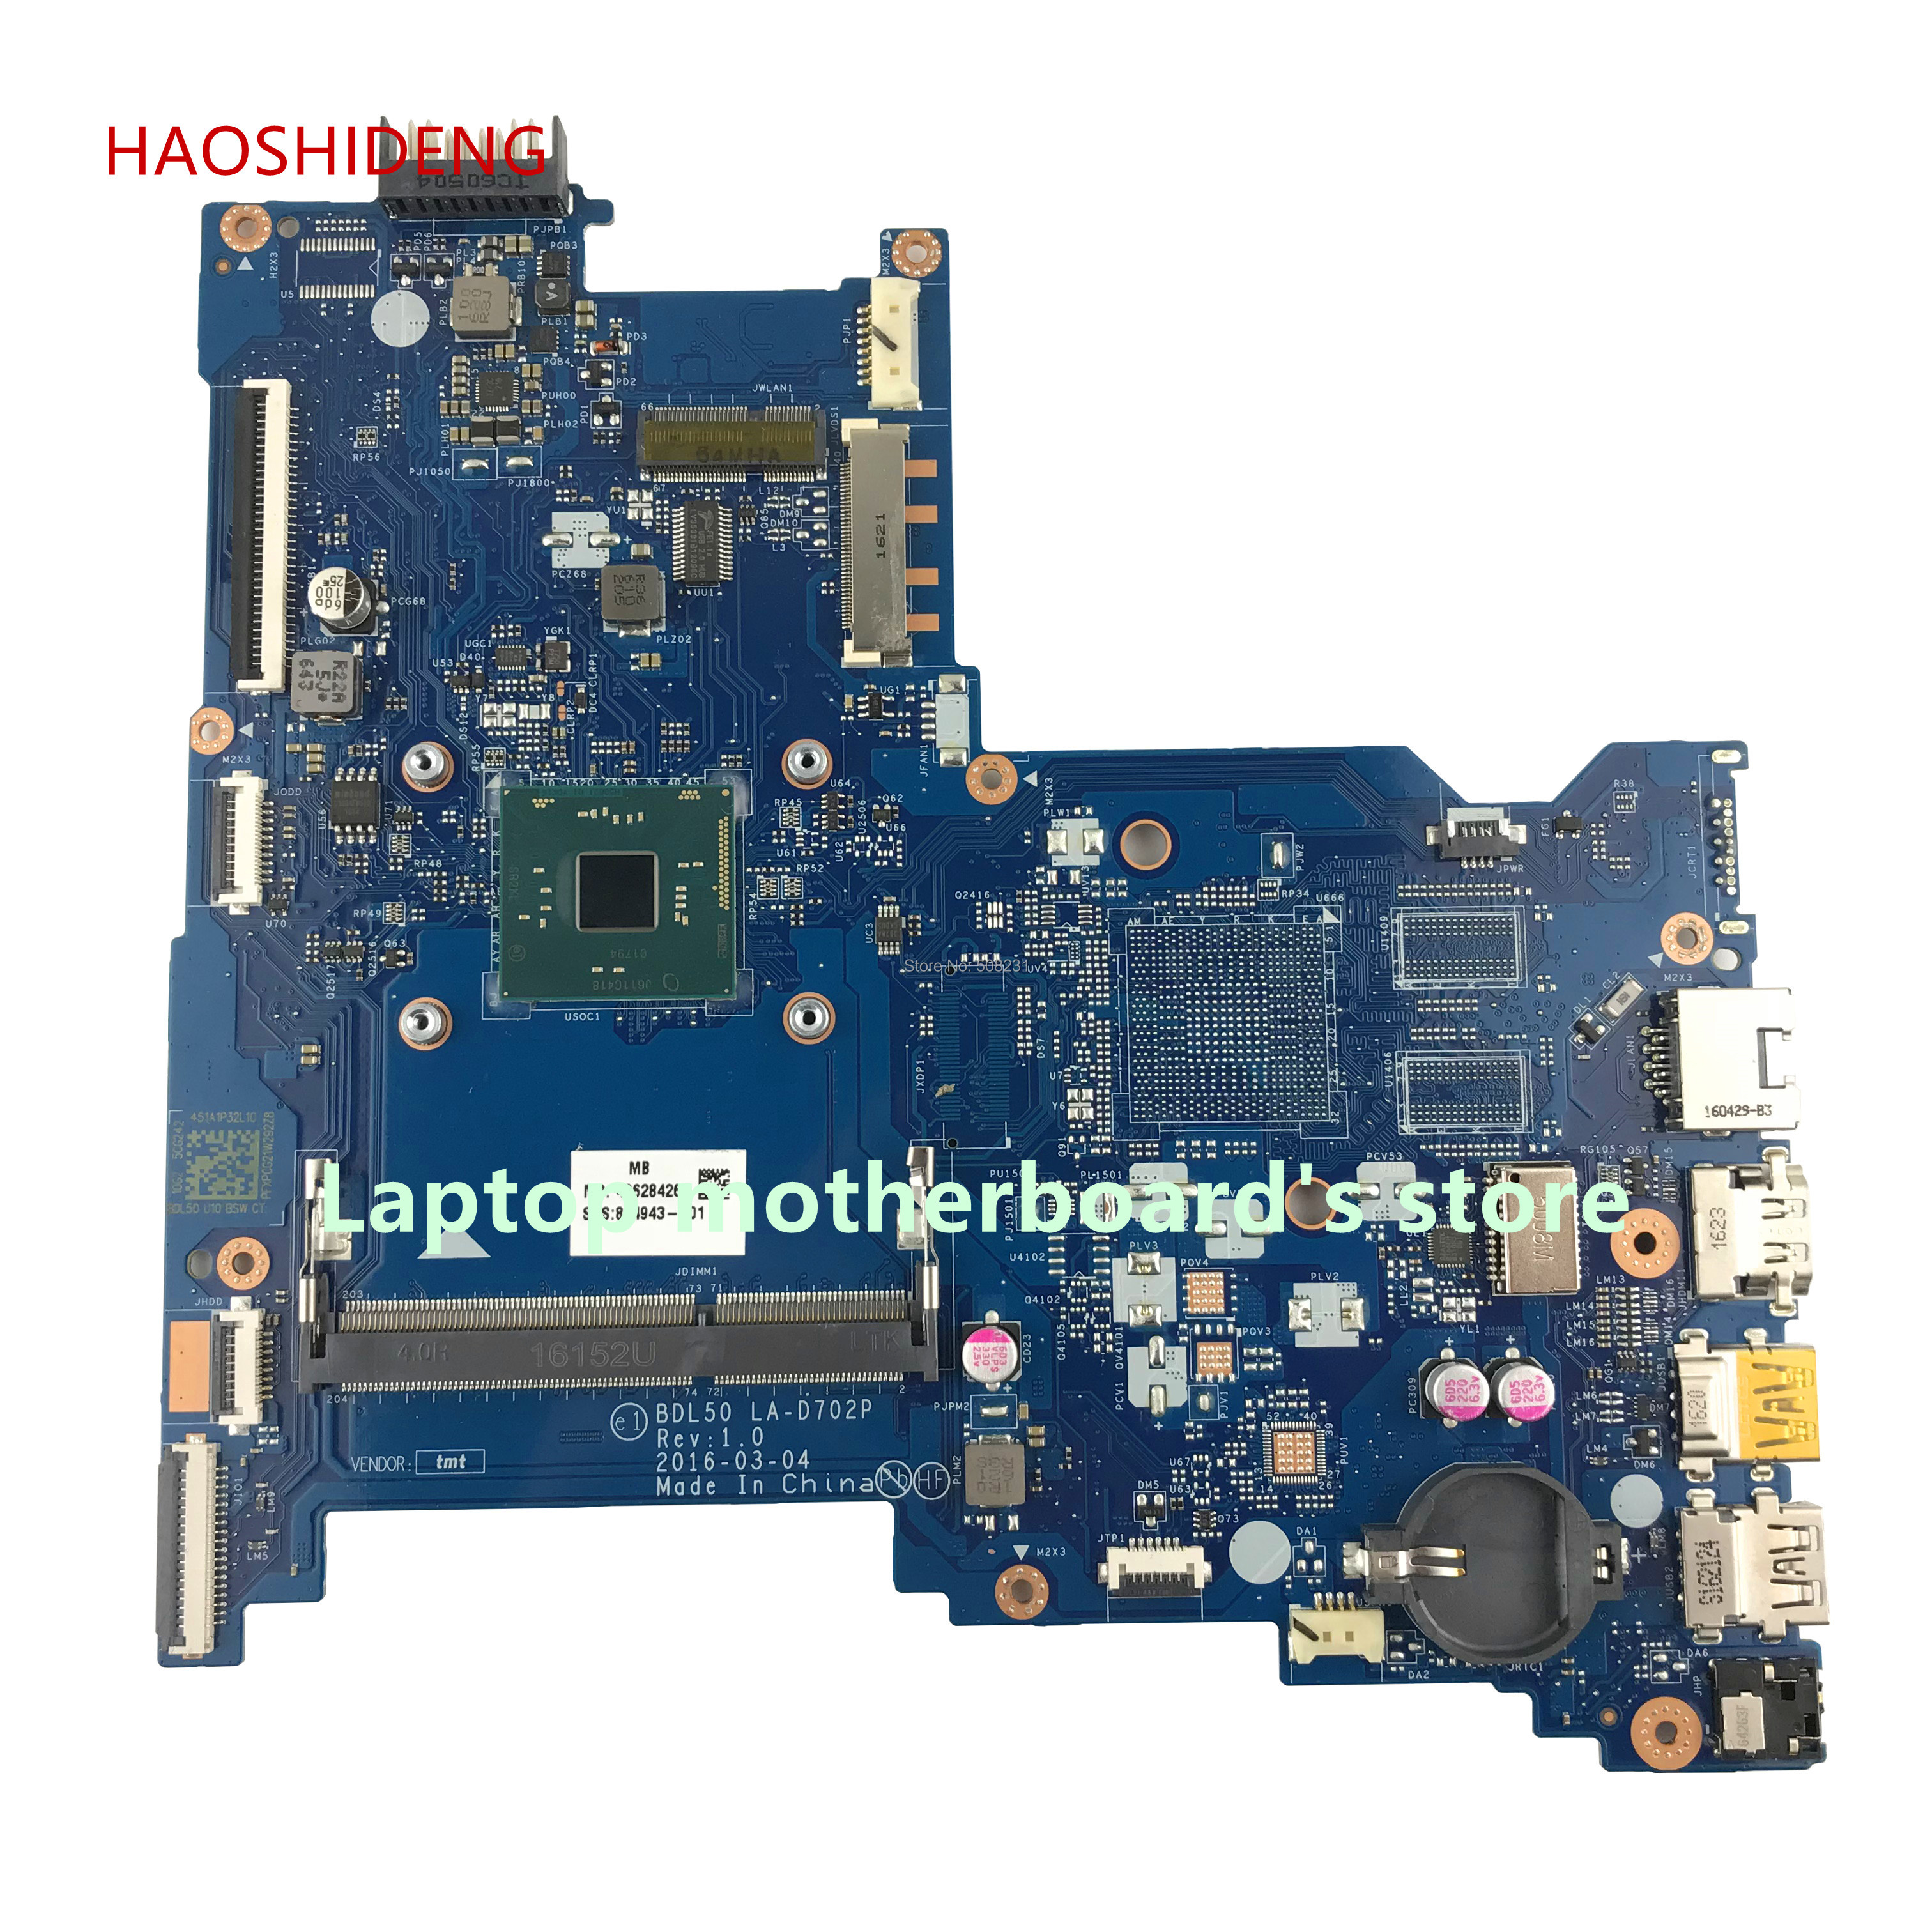 HAOSHIDENG 854943-601 854943-501 LA-D702P for HP NOTEBOOK 15-AY 15-AC 15-AY022DS laptop motherboard with N3710 fully Tested free shipping 854949 601 bdl50 la d702p for hp notebook 15 ay series motherboard with n3160 cpu all functions 100